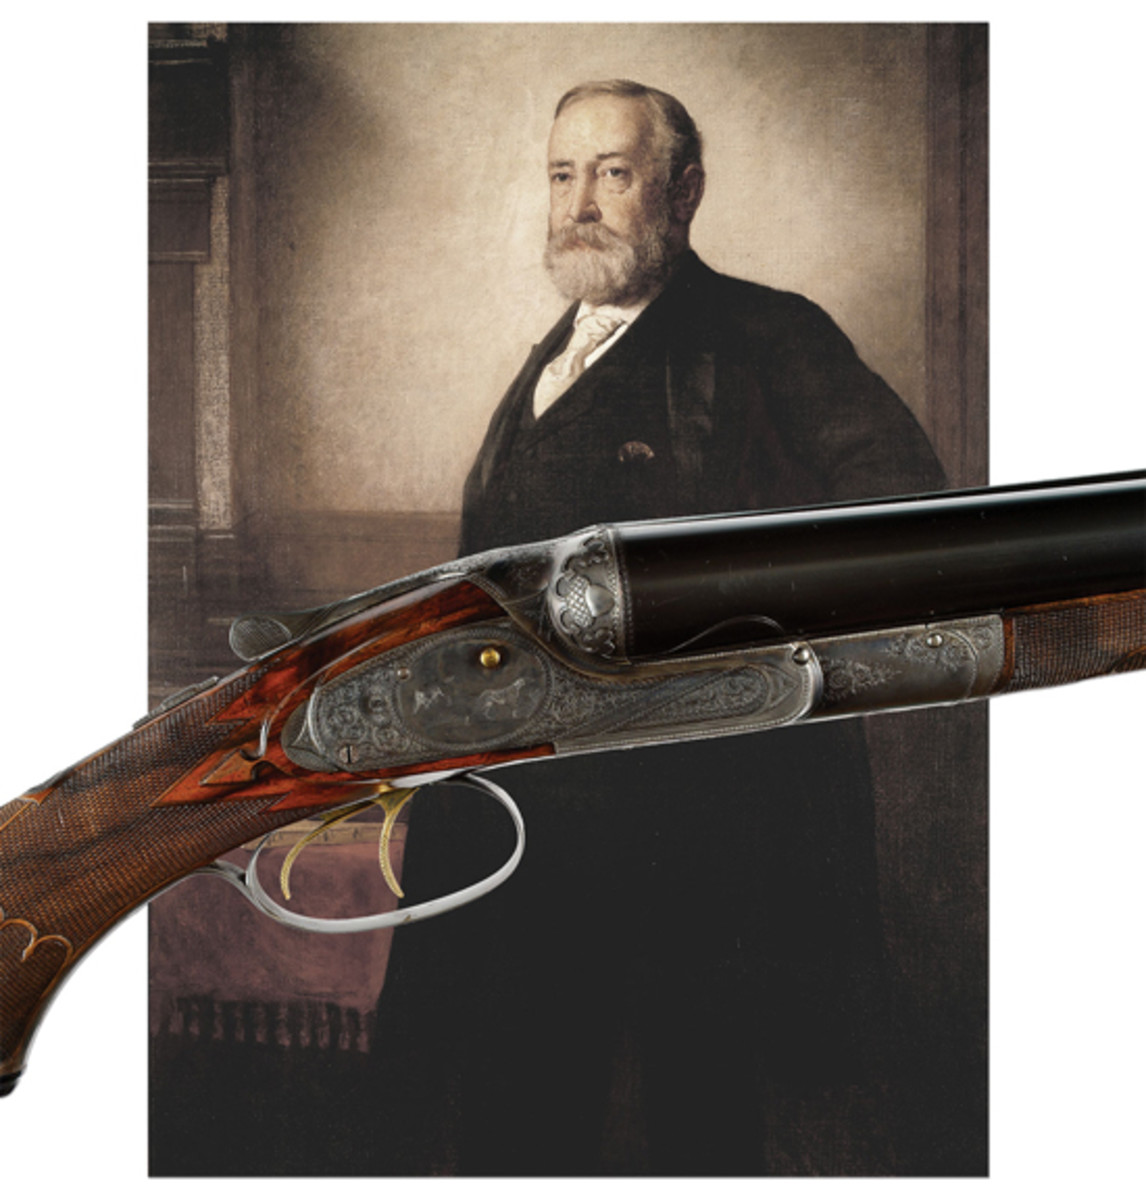 """Spectacular Presidential Lefever """"Optimus"""" Quality Shotgun, Presented to Benjamin Harrison for His """"Protection to American Industry;"""" Probably the Finest and Most Important 19th Century American Shotgun (Tudor Jones II Collection) (est. $75,000-125,000), Sold for $120,750"""